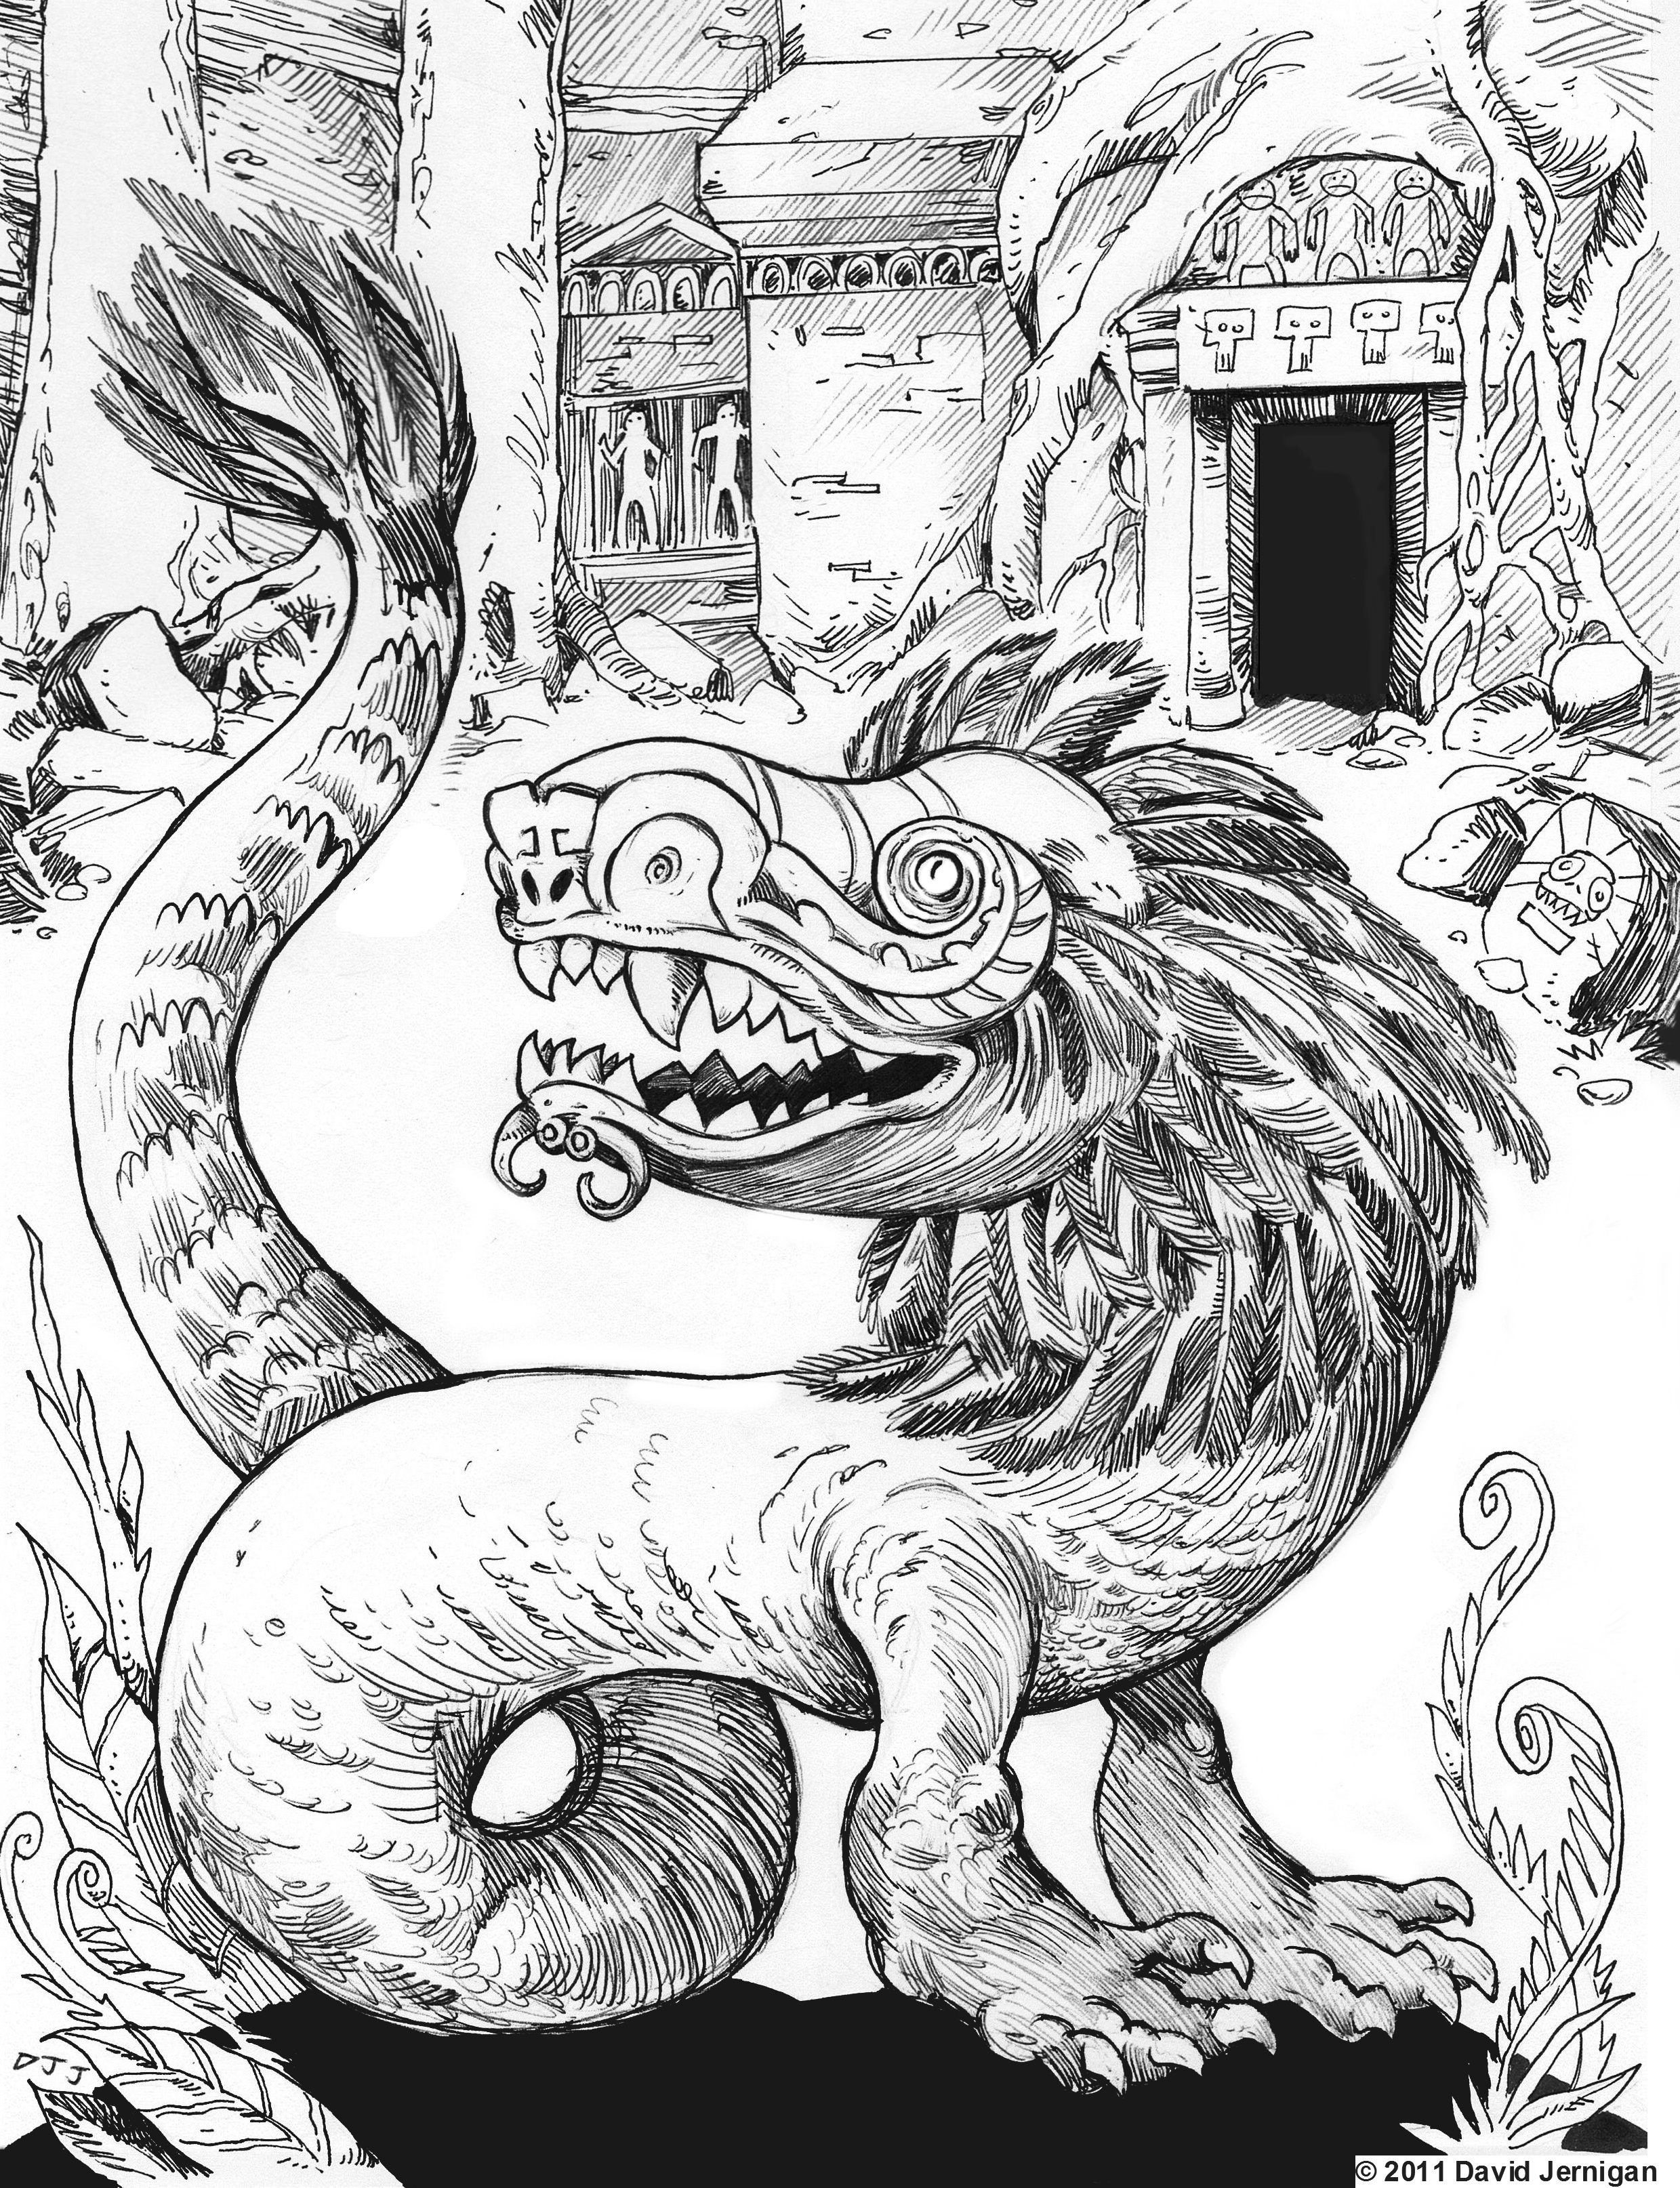 Feathered Serpent Drawing Sketcharound